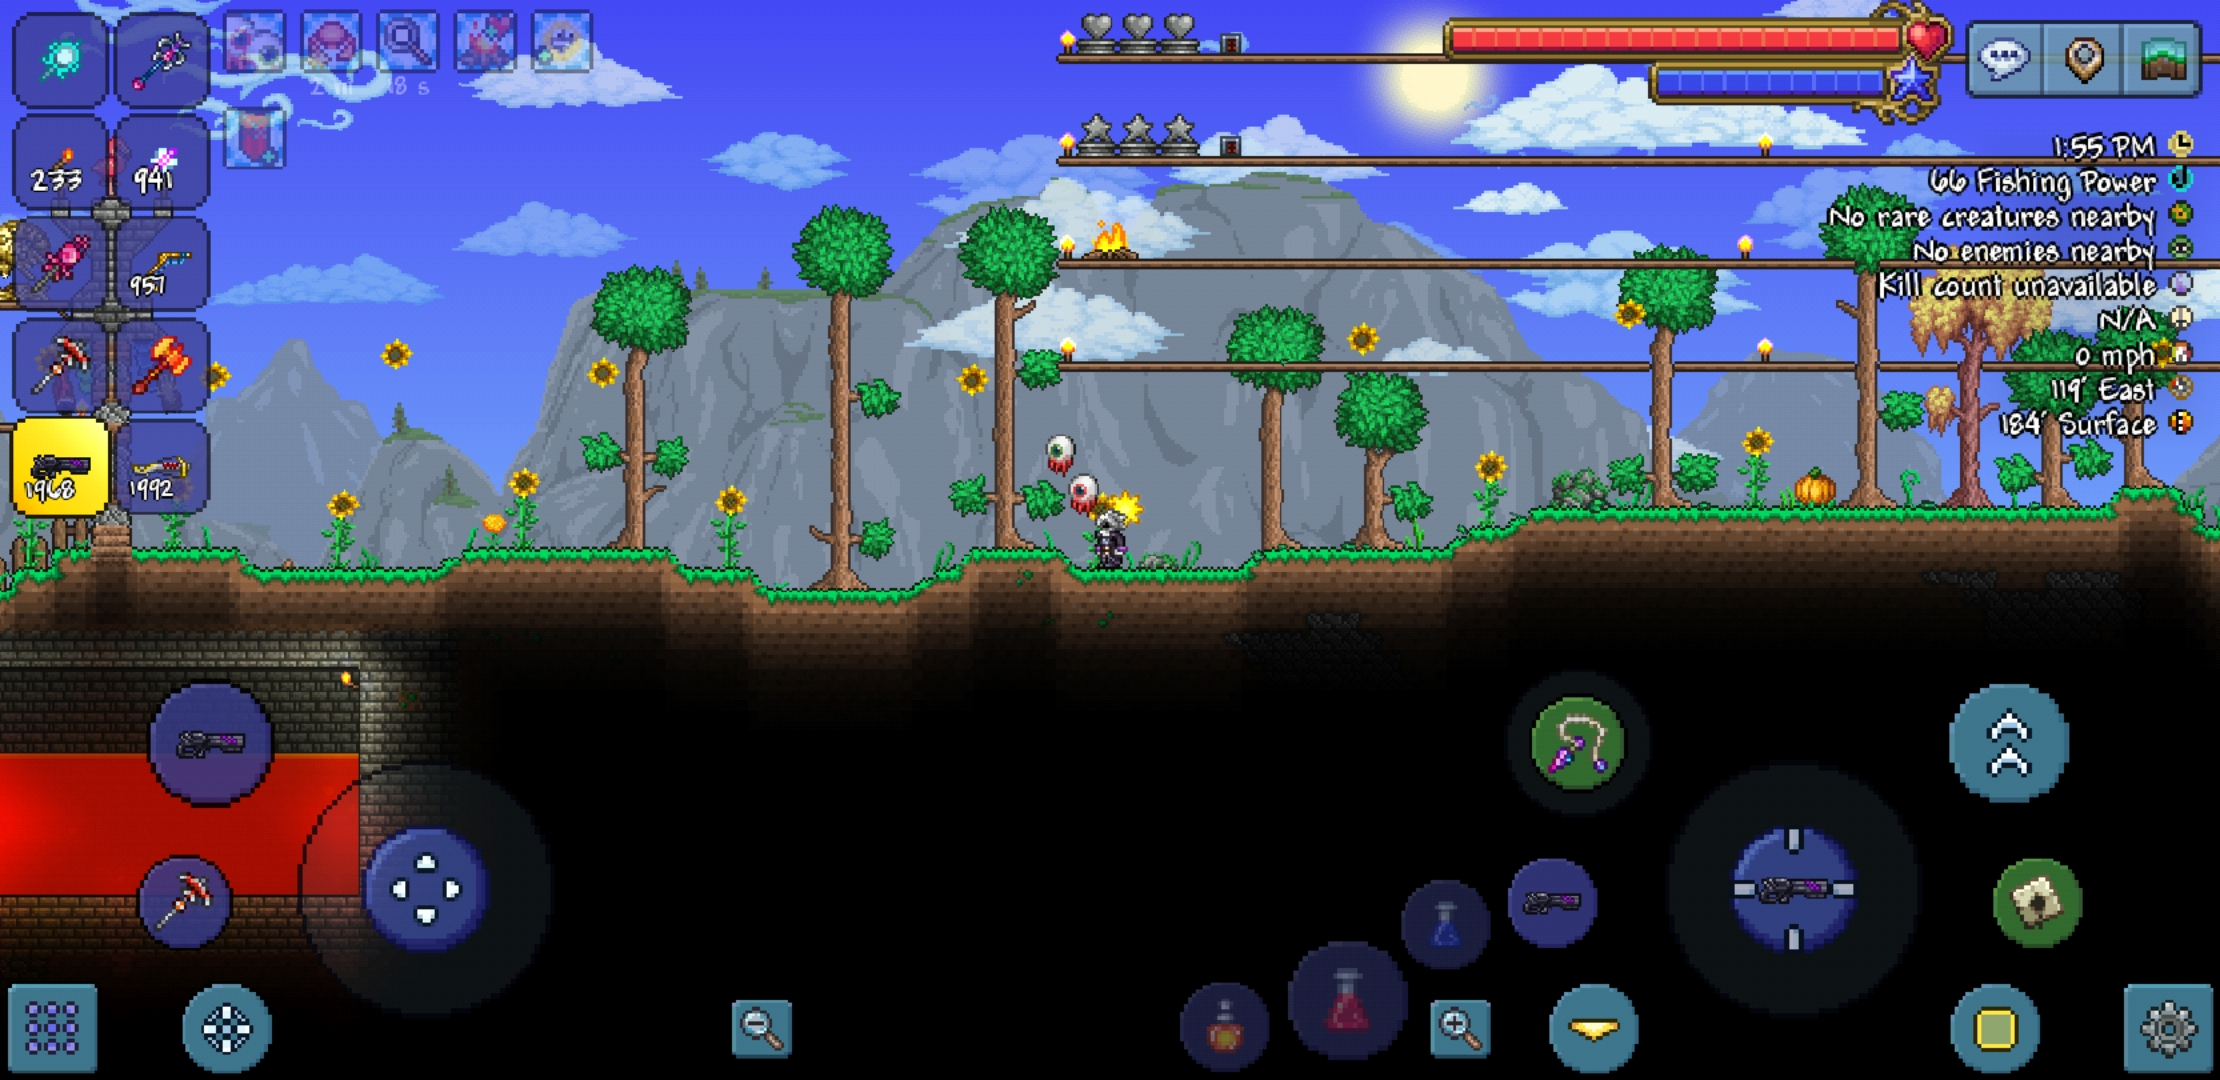 Screenshot_20201026-112556_Terraria.jpg